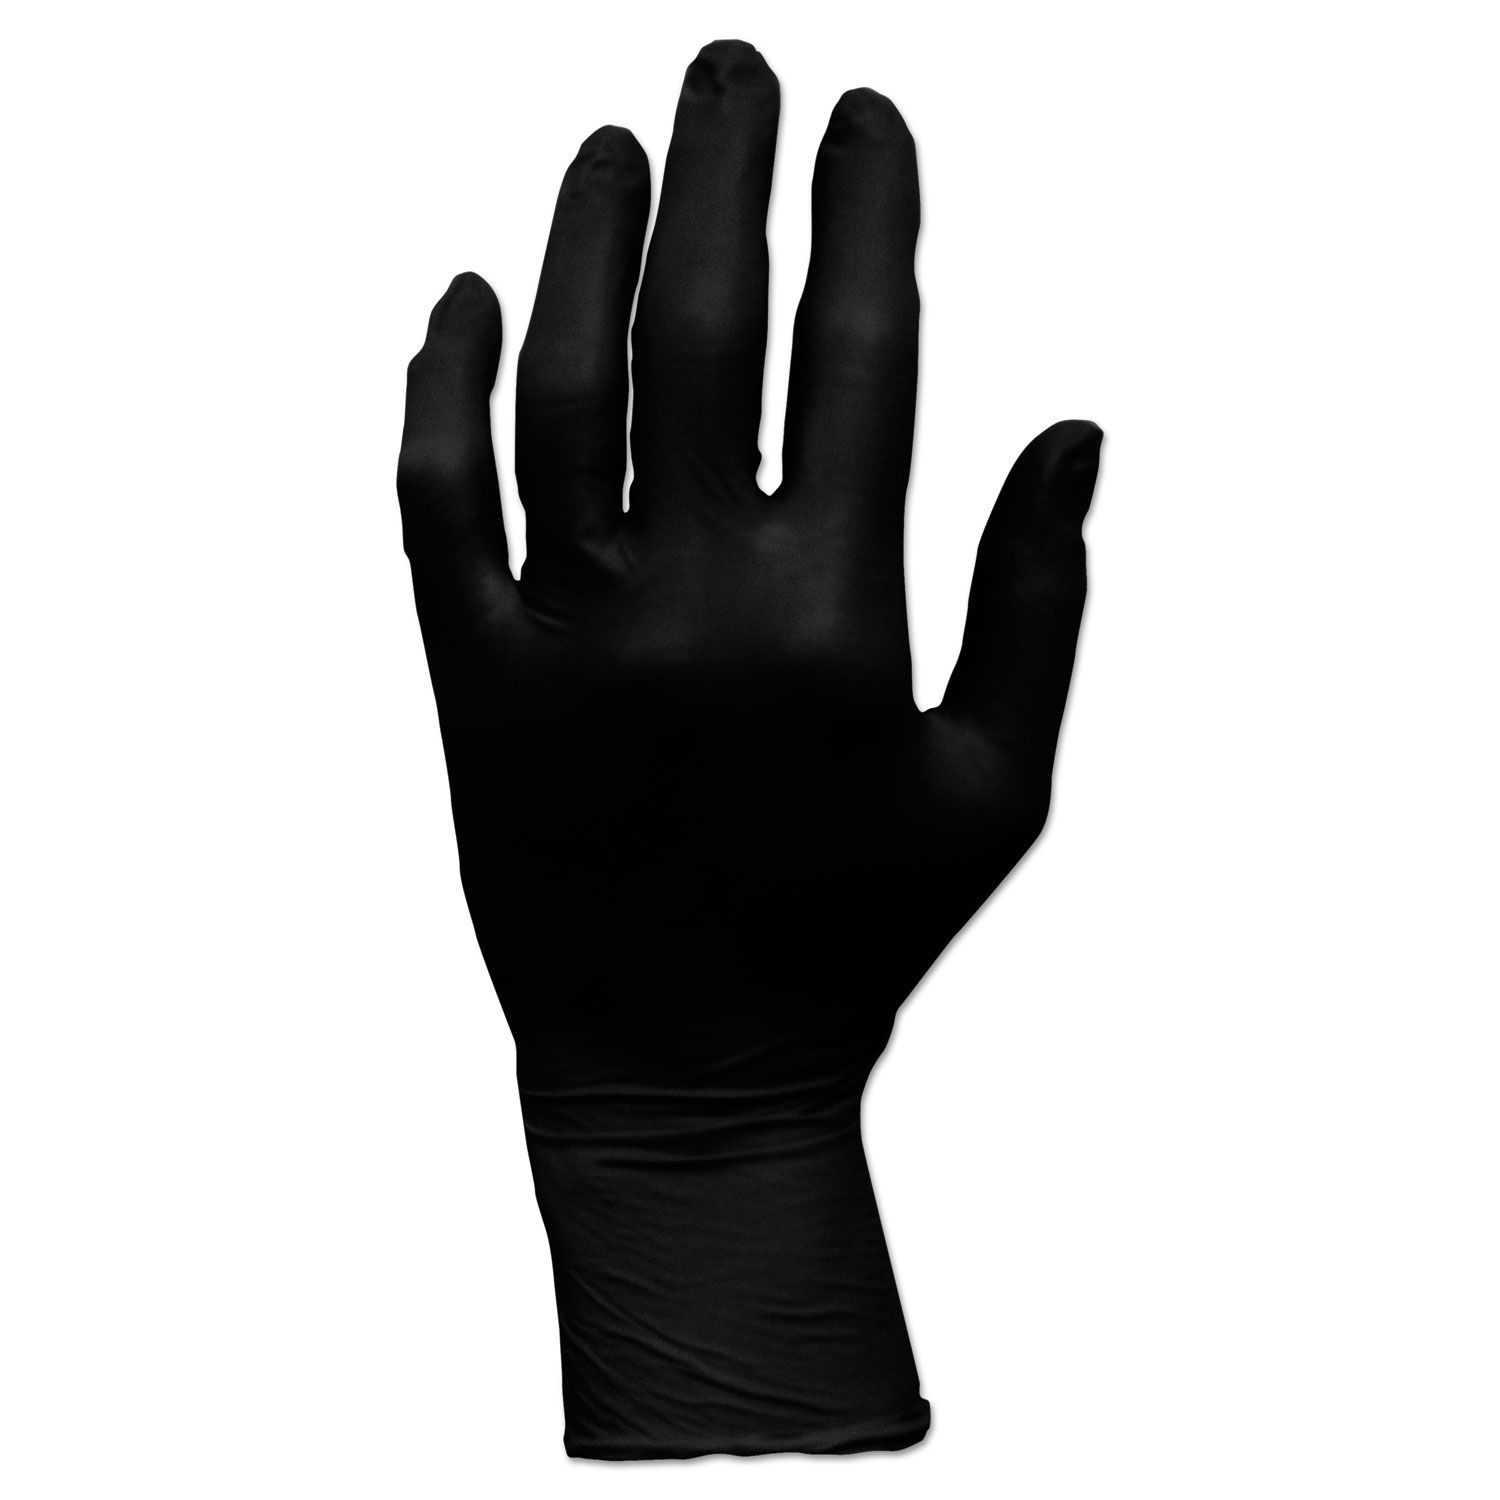 ProWorks GrizzlyNite Nitrile Gloves, Black, Small, 1000/CT